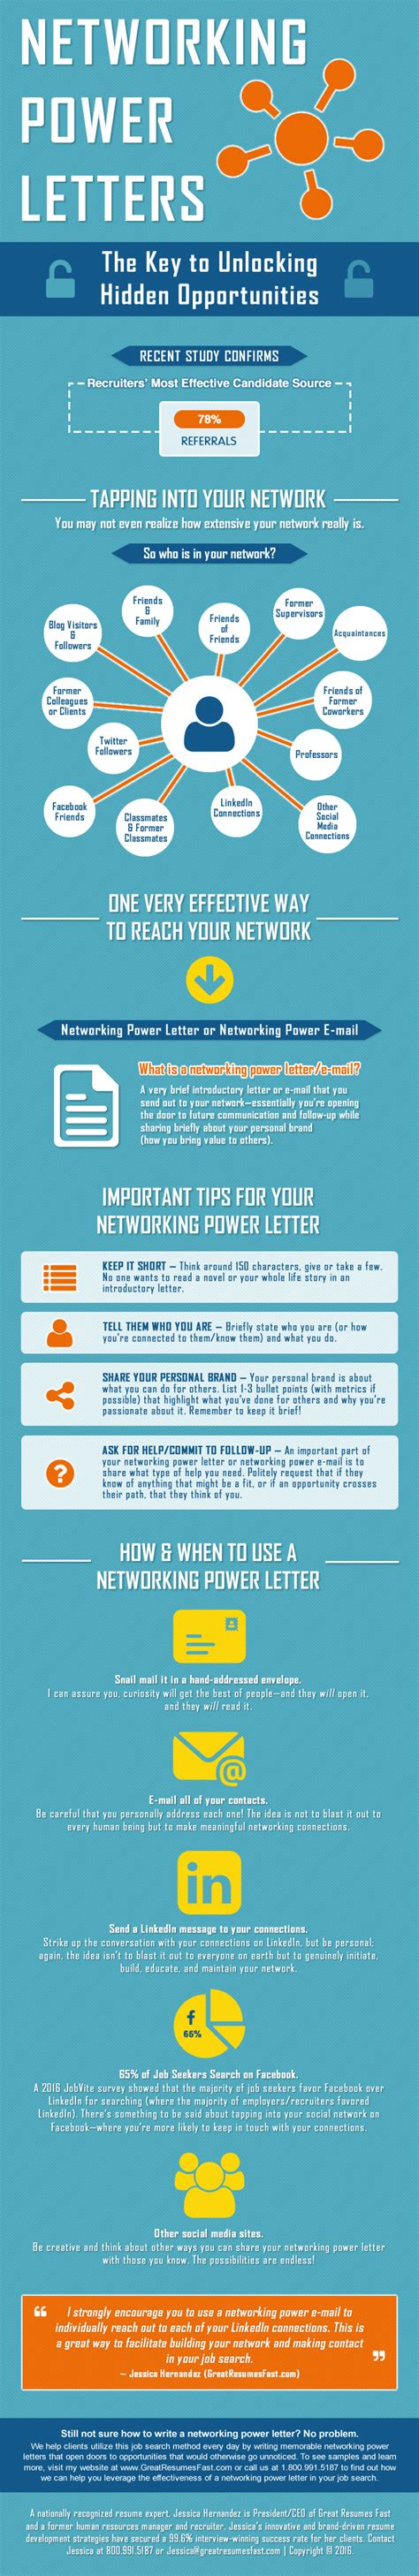 infographic networking power letters the key to